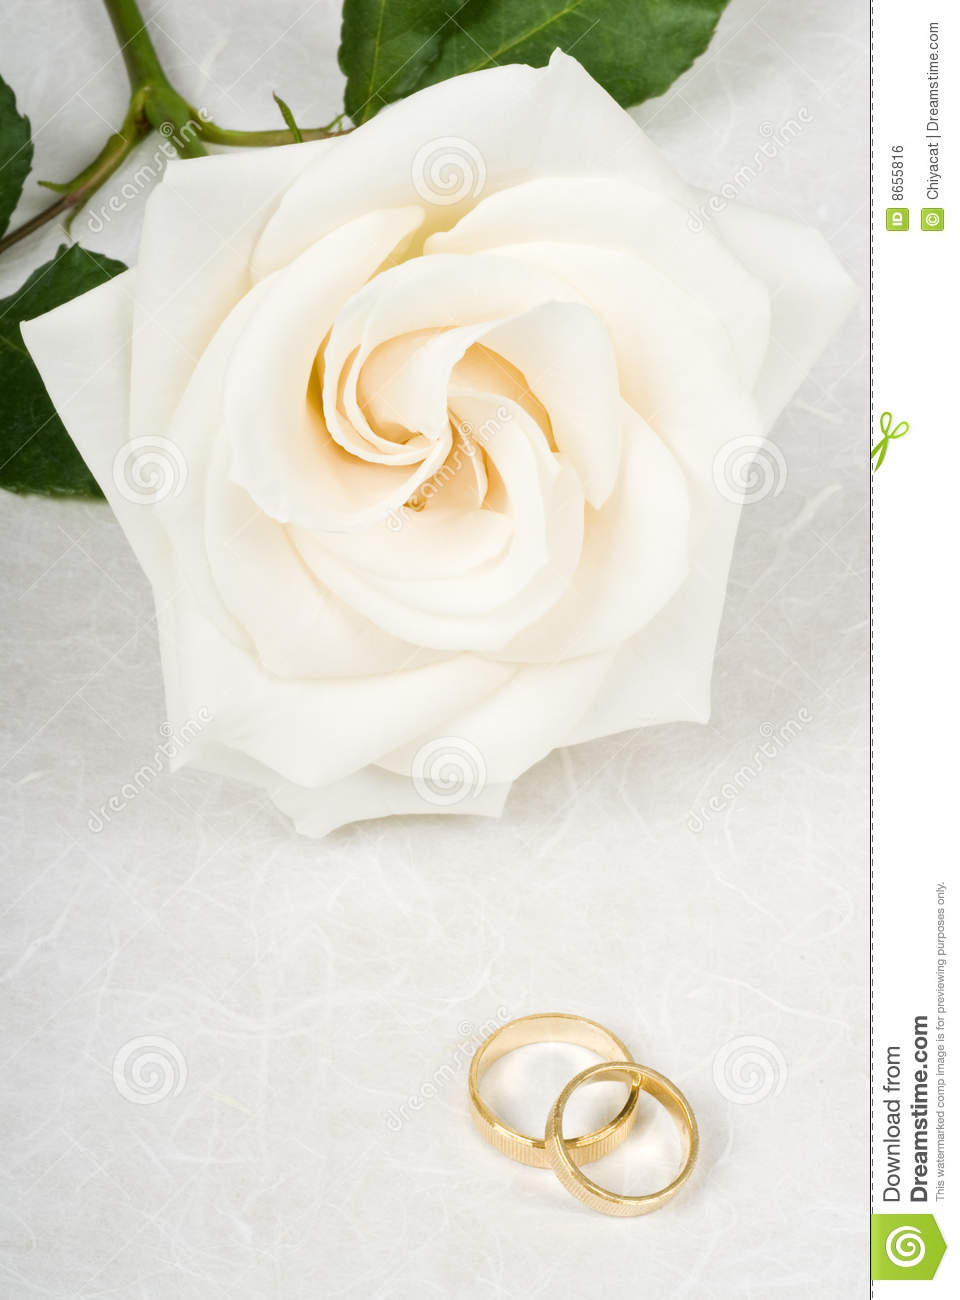 White Rose And Wedding Rings On Textured Paper